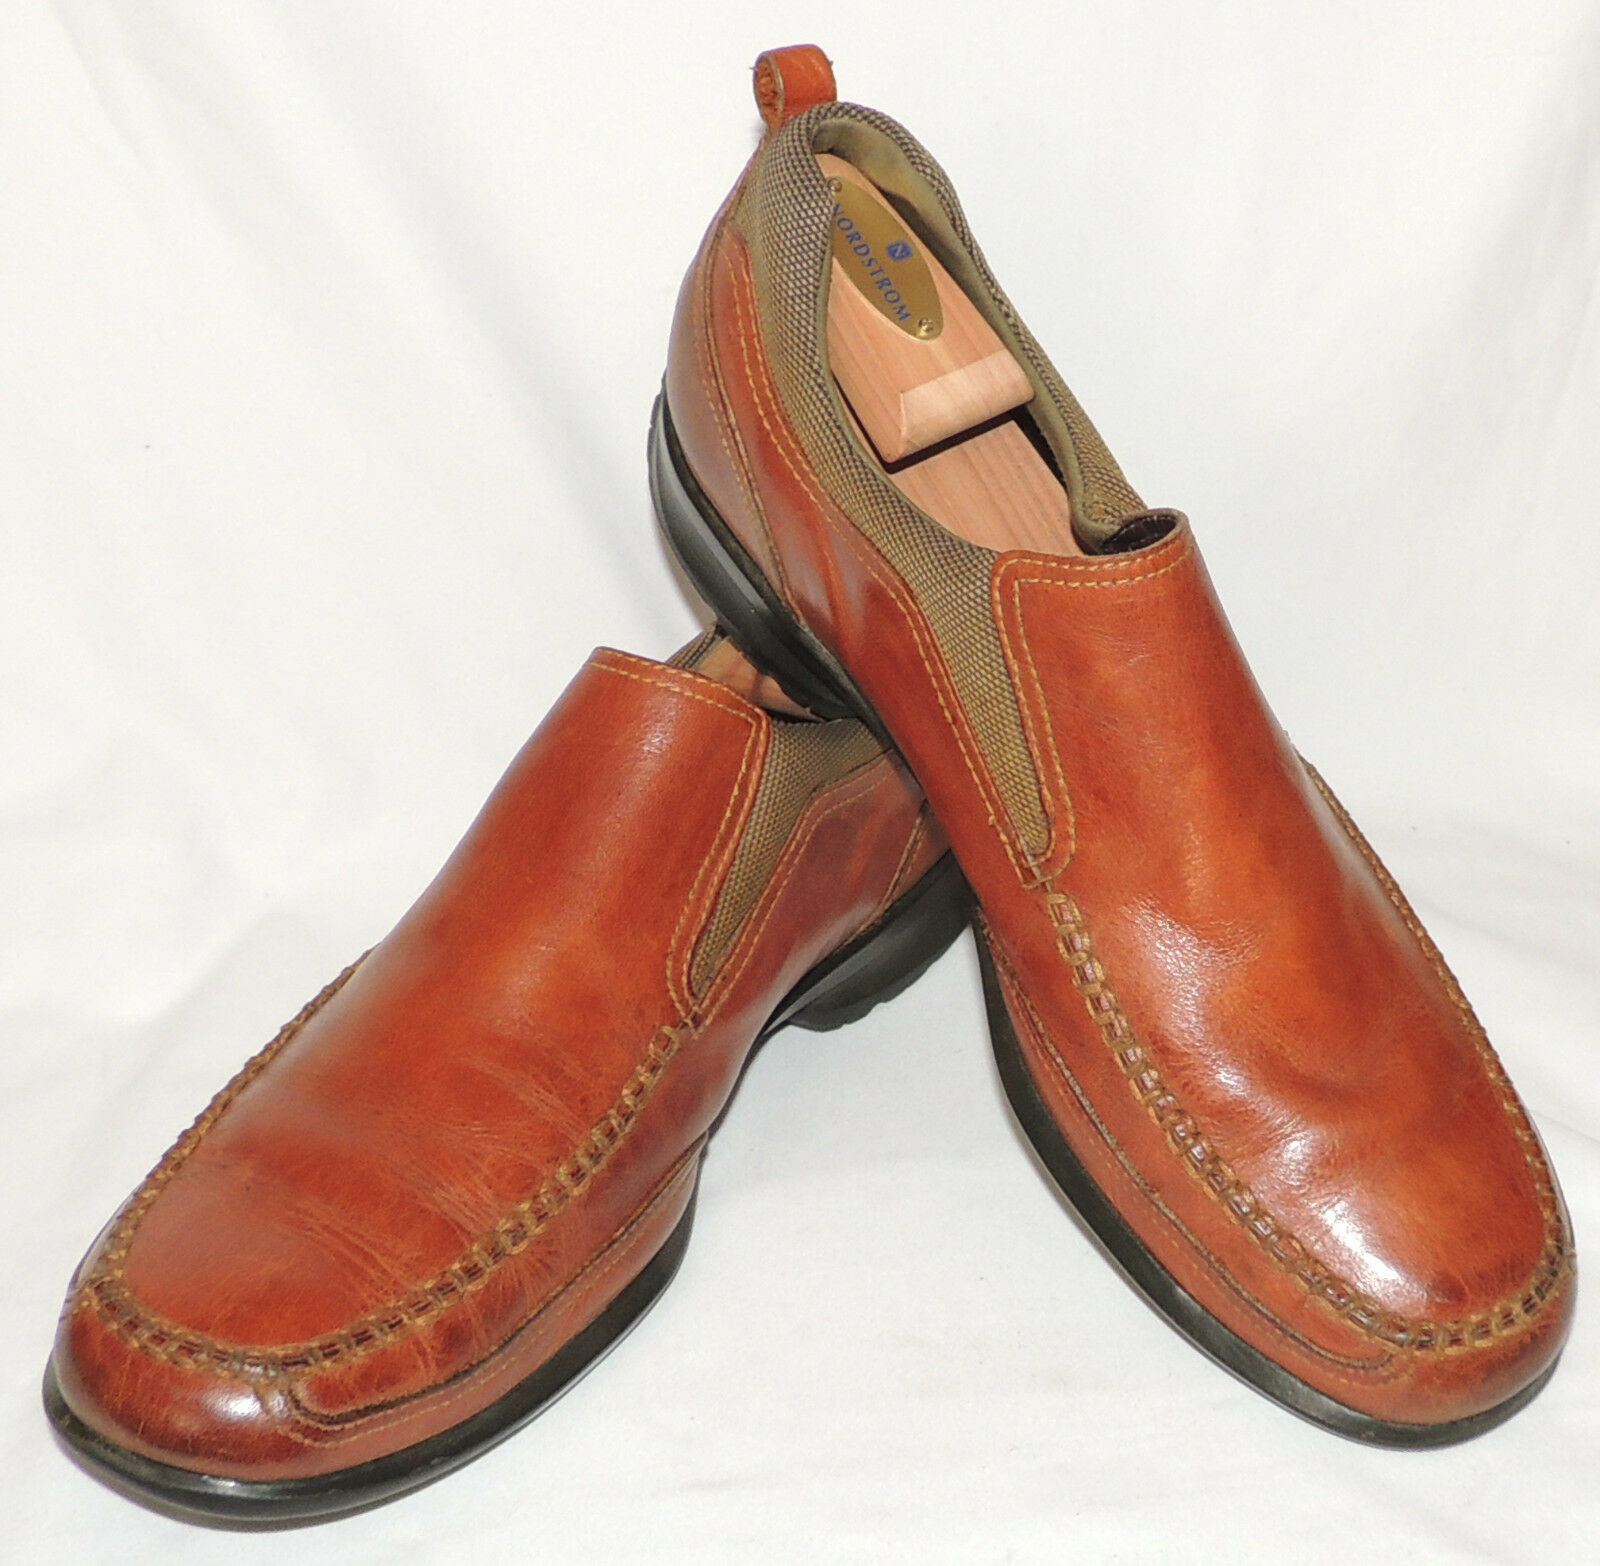 MEN'S COLE HAAN 'DARK BROWN' LOAFERS SIZE 11 M